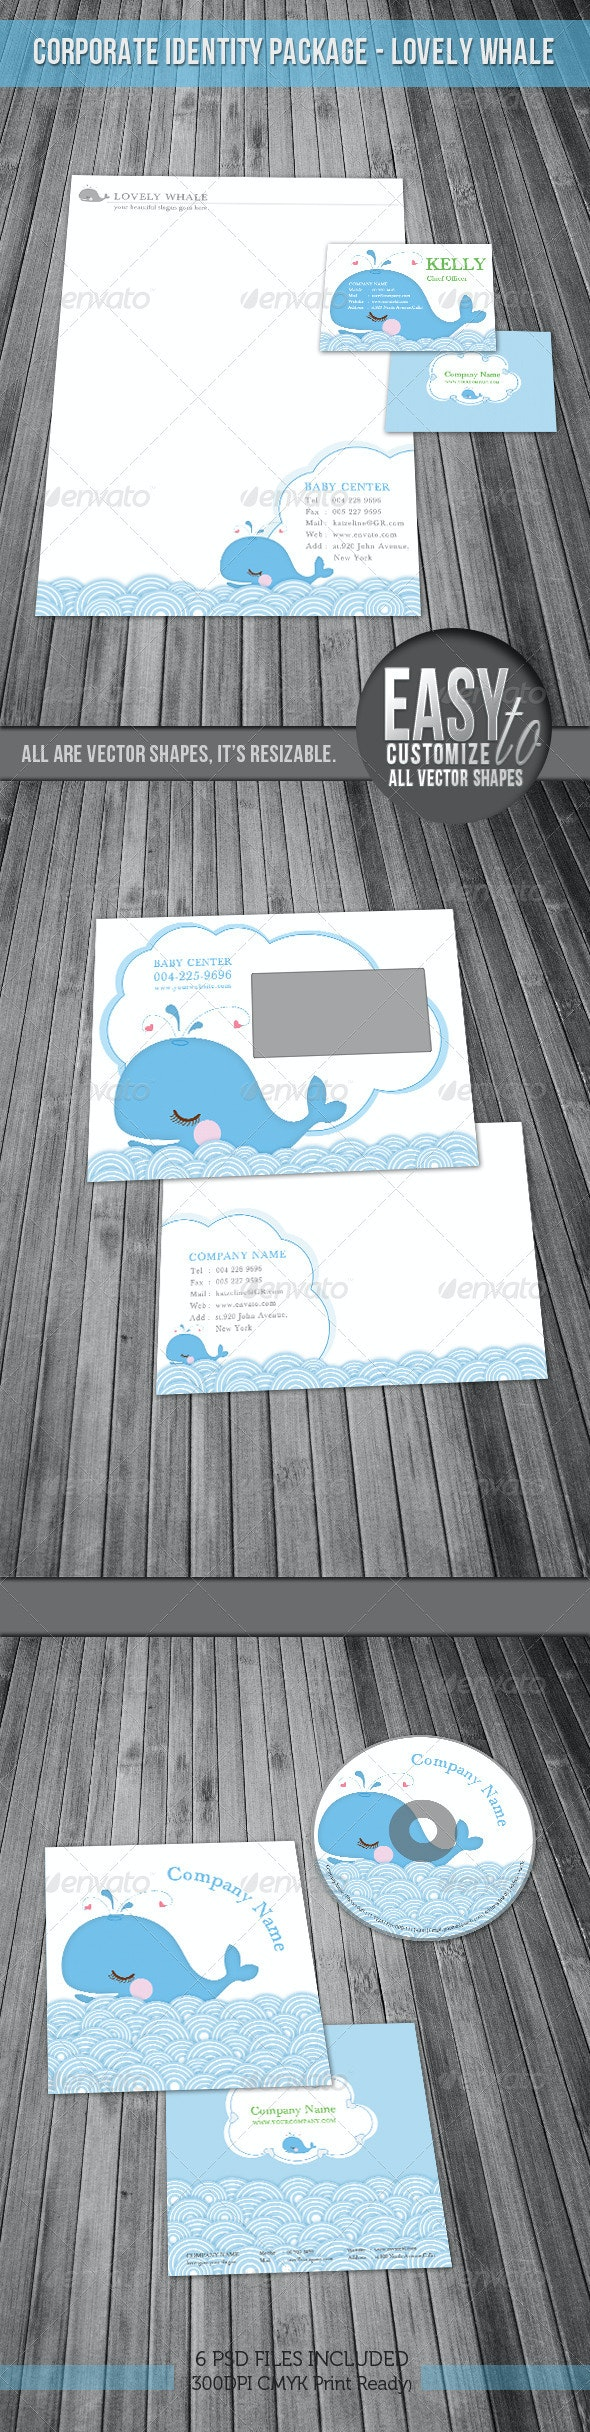 Corporate Identity Package - Lovely Whale - Stationery Print Templates